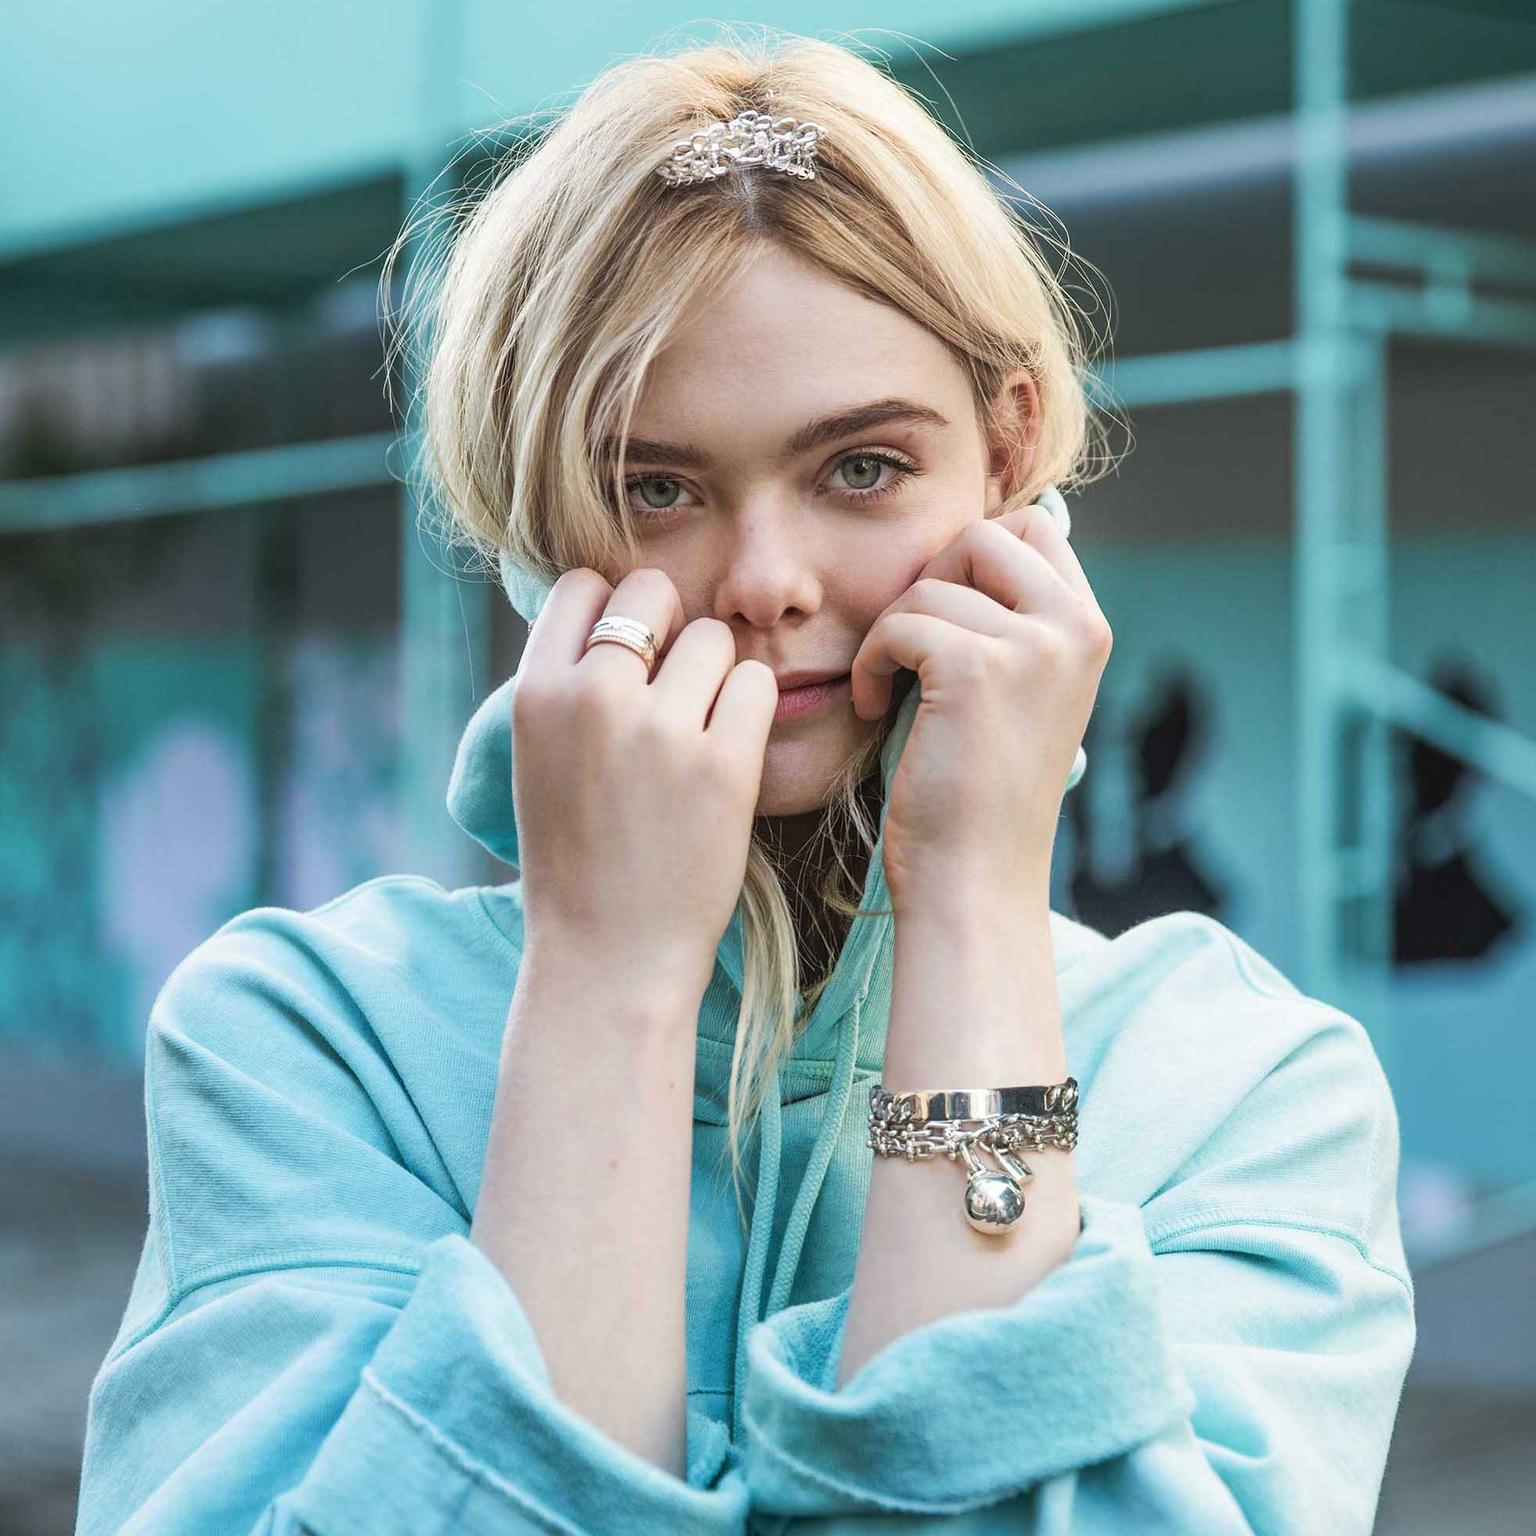 Elle Fanning is the star of Tiffany's new advertising campaign, and like Audrey Hepburn she wears a mini tiara